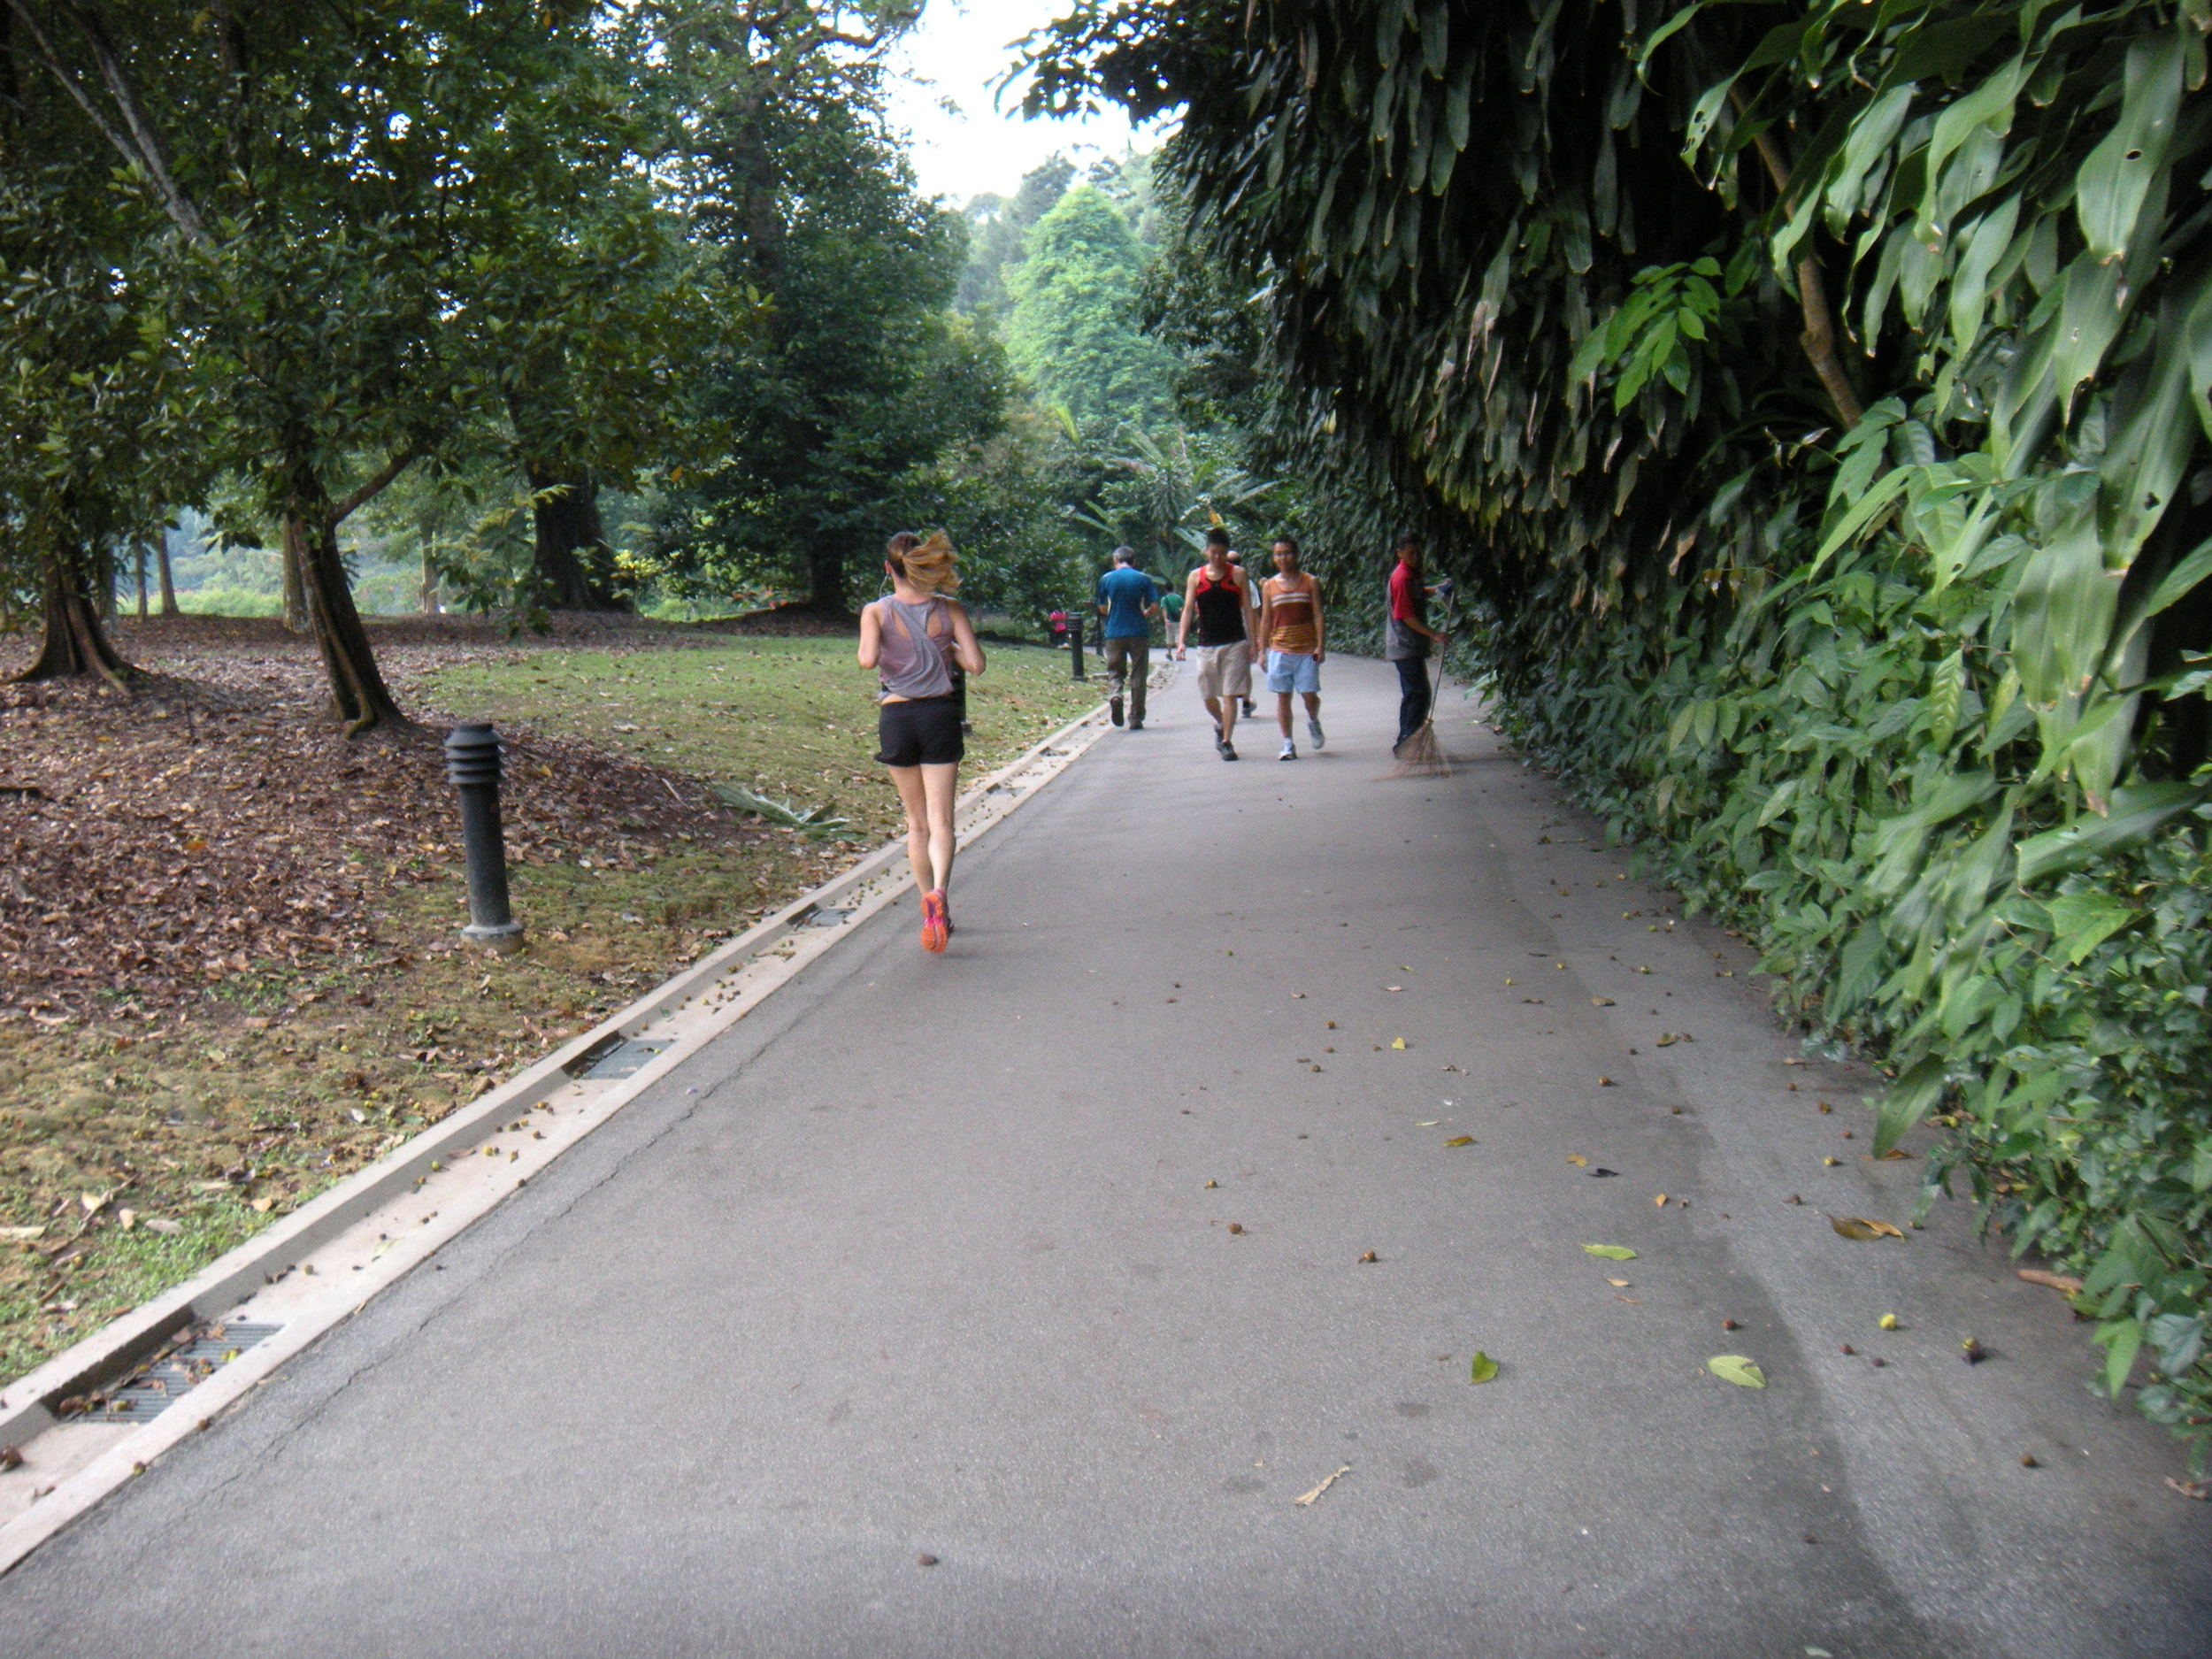 The woman running in the park.